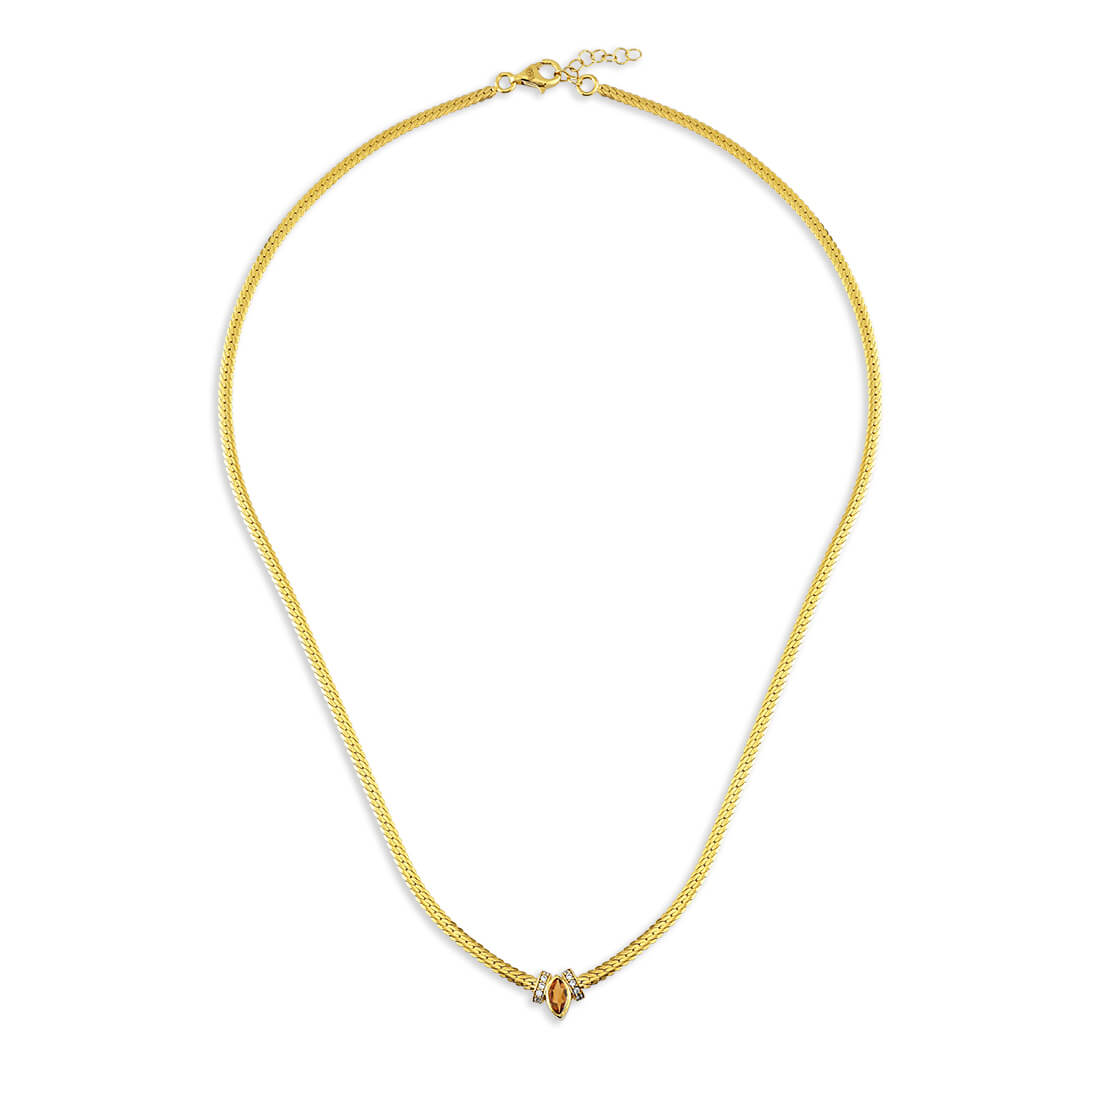 MARQUISE CITRINE NATURAL STONE NECKLACE